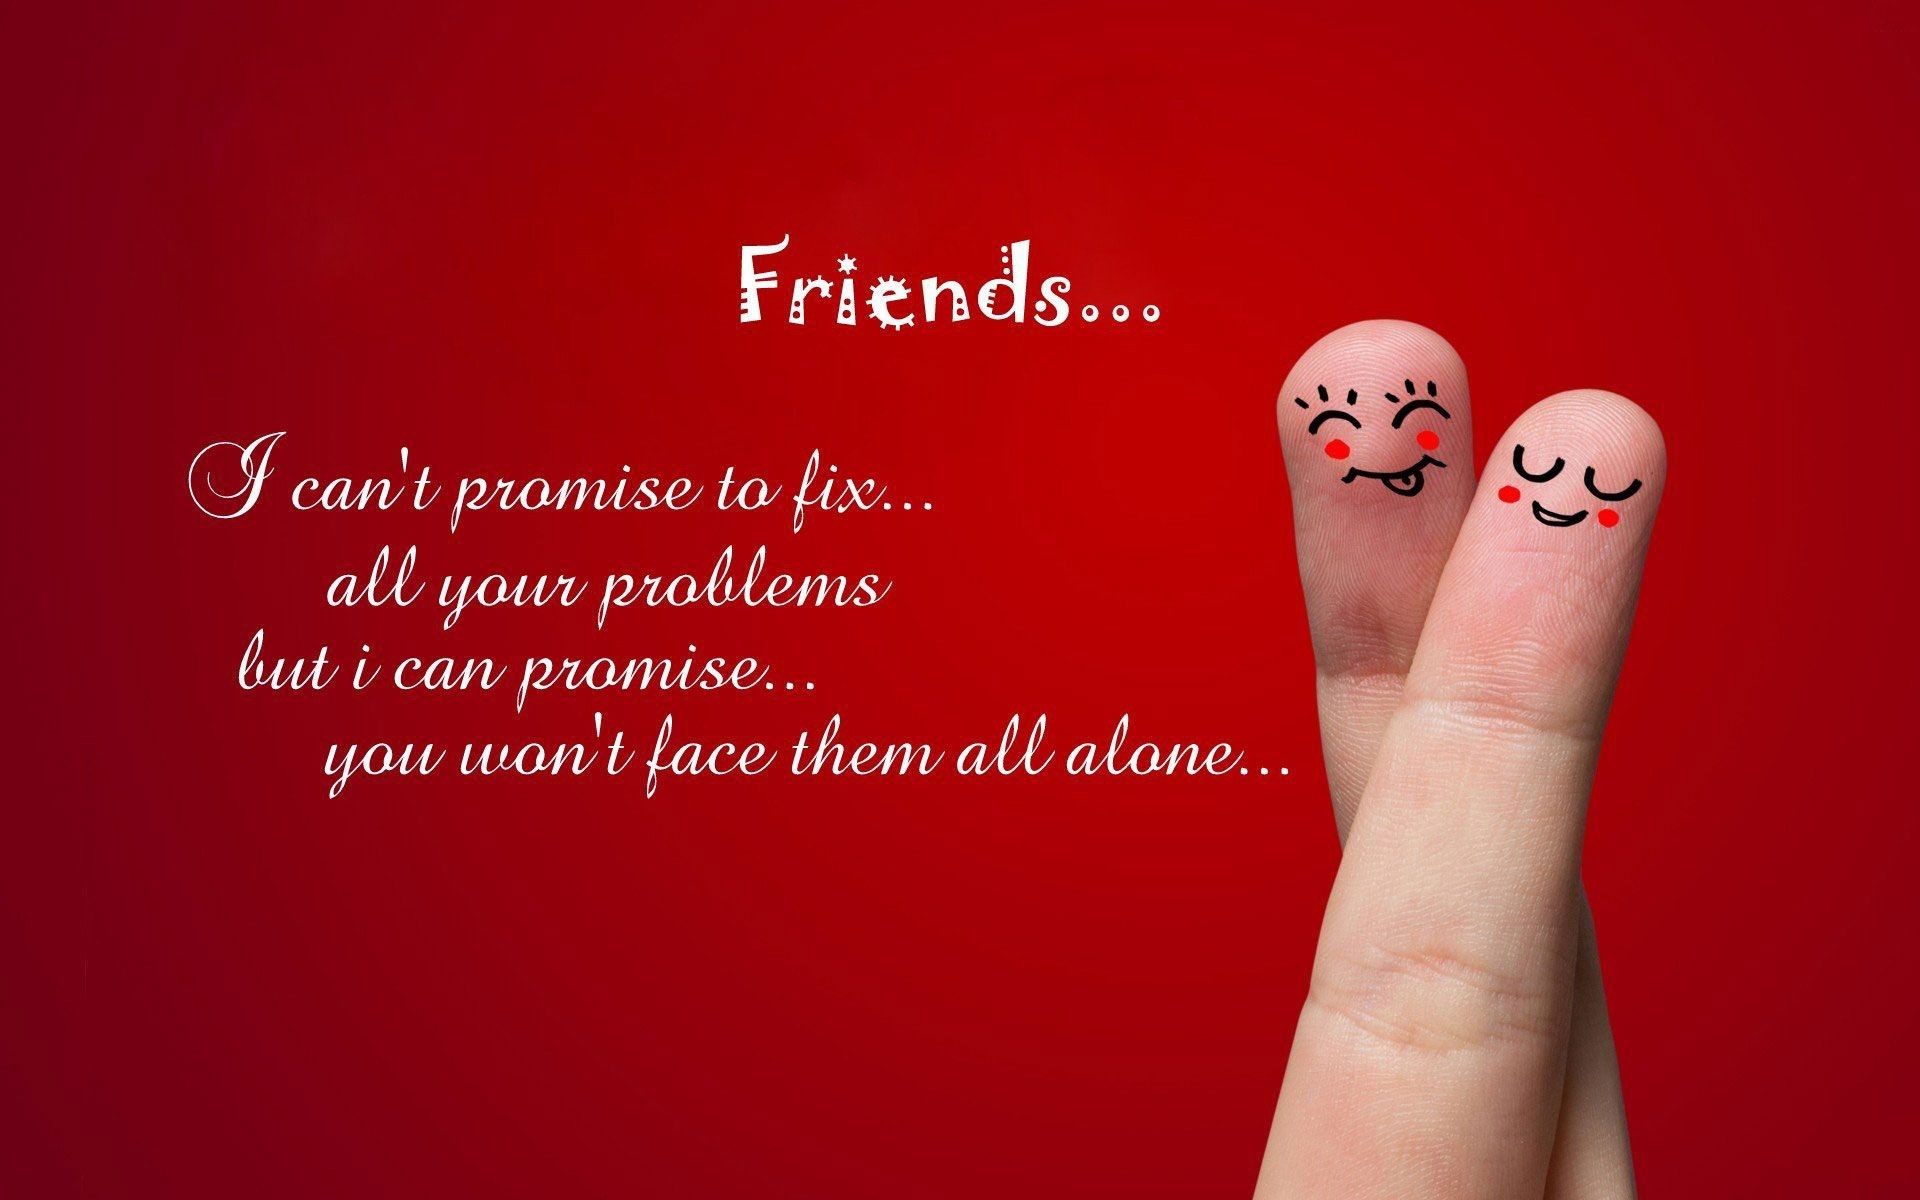 Cute Friendship Quotes With Images Friendship Wallpapers